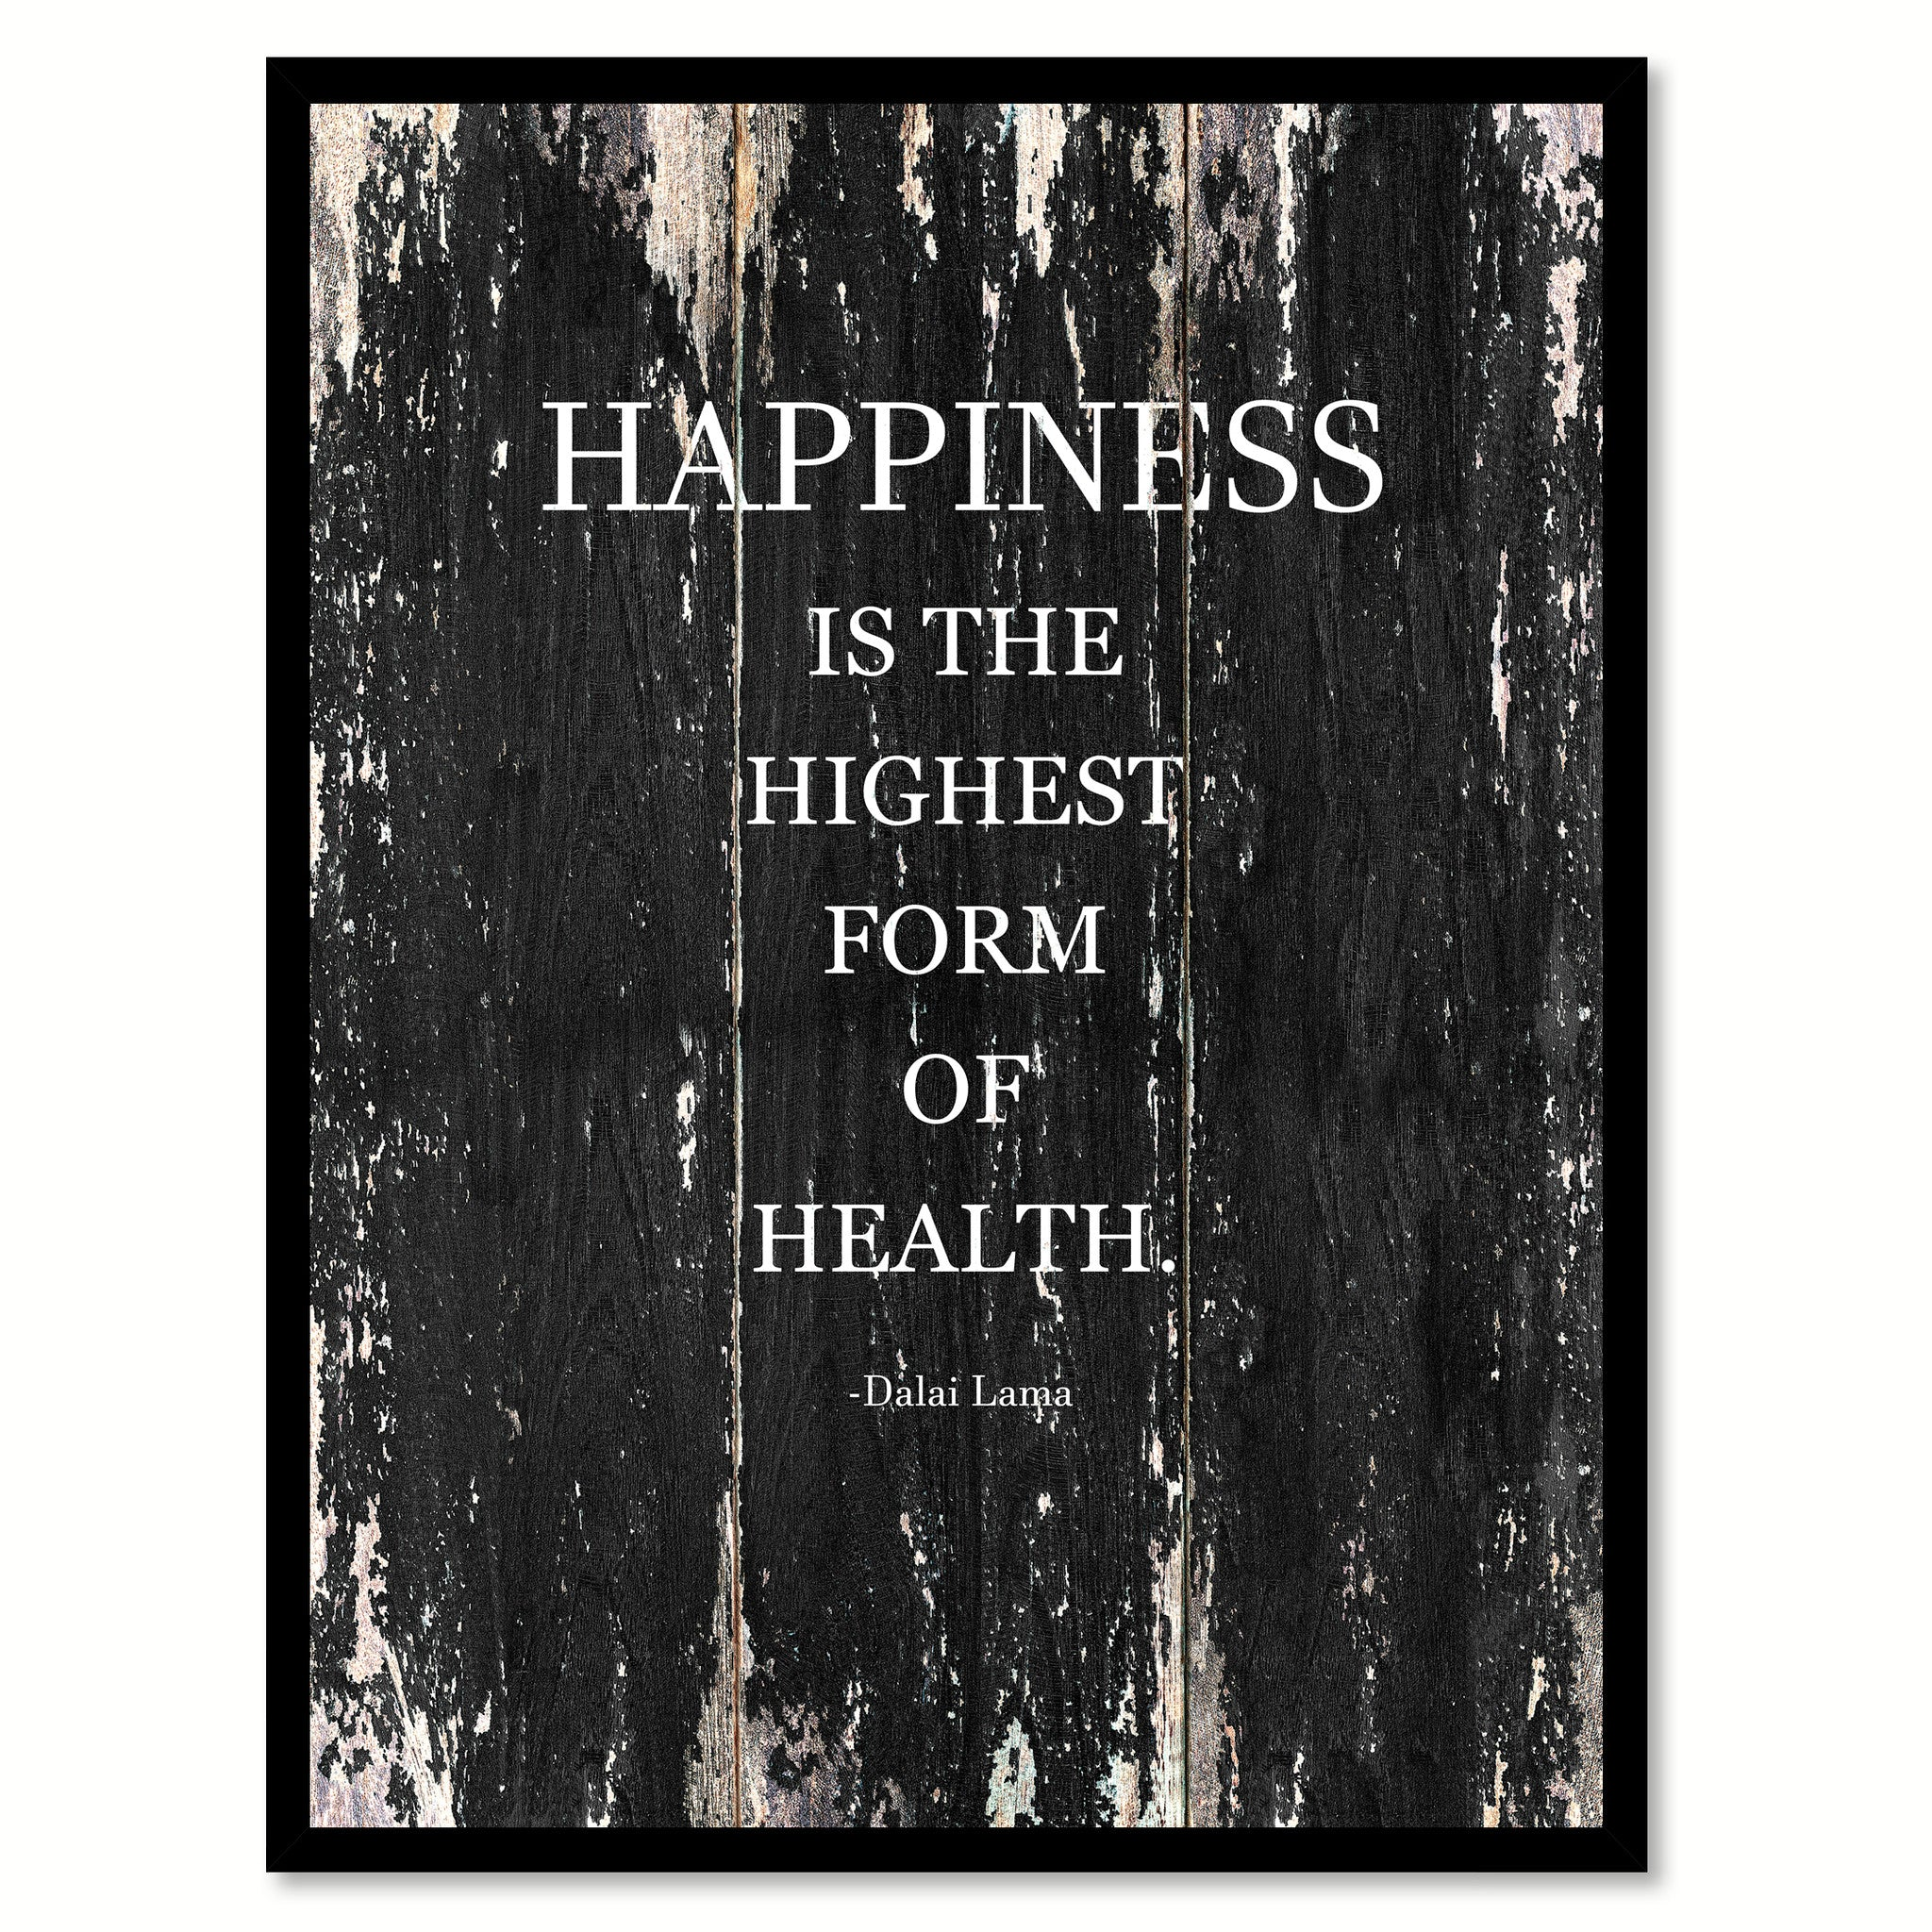 Happiness Is The Highest Form Of Health Dalai Lama Inspirational